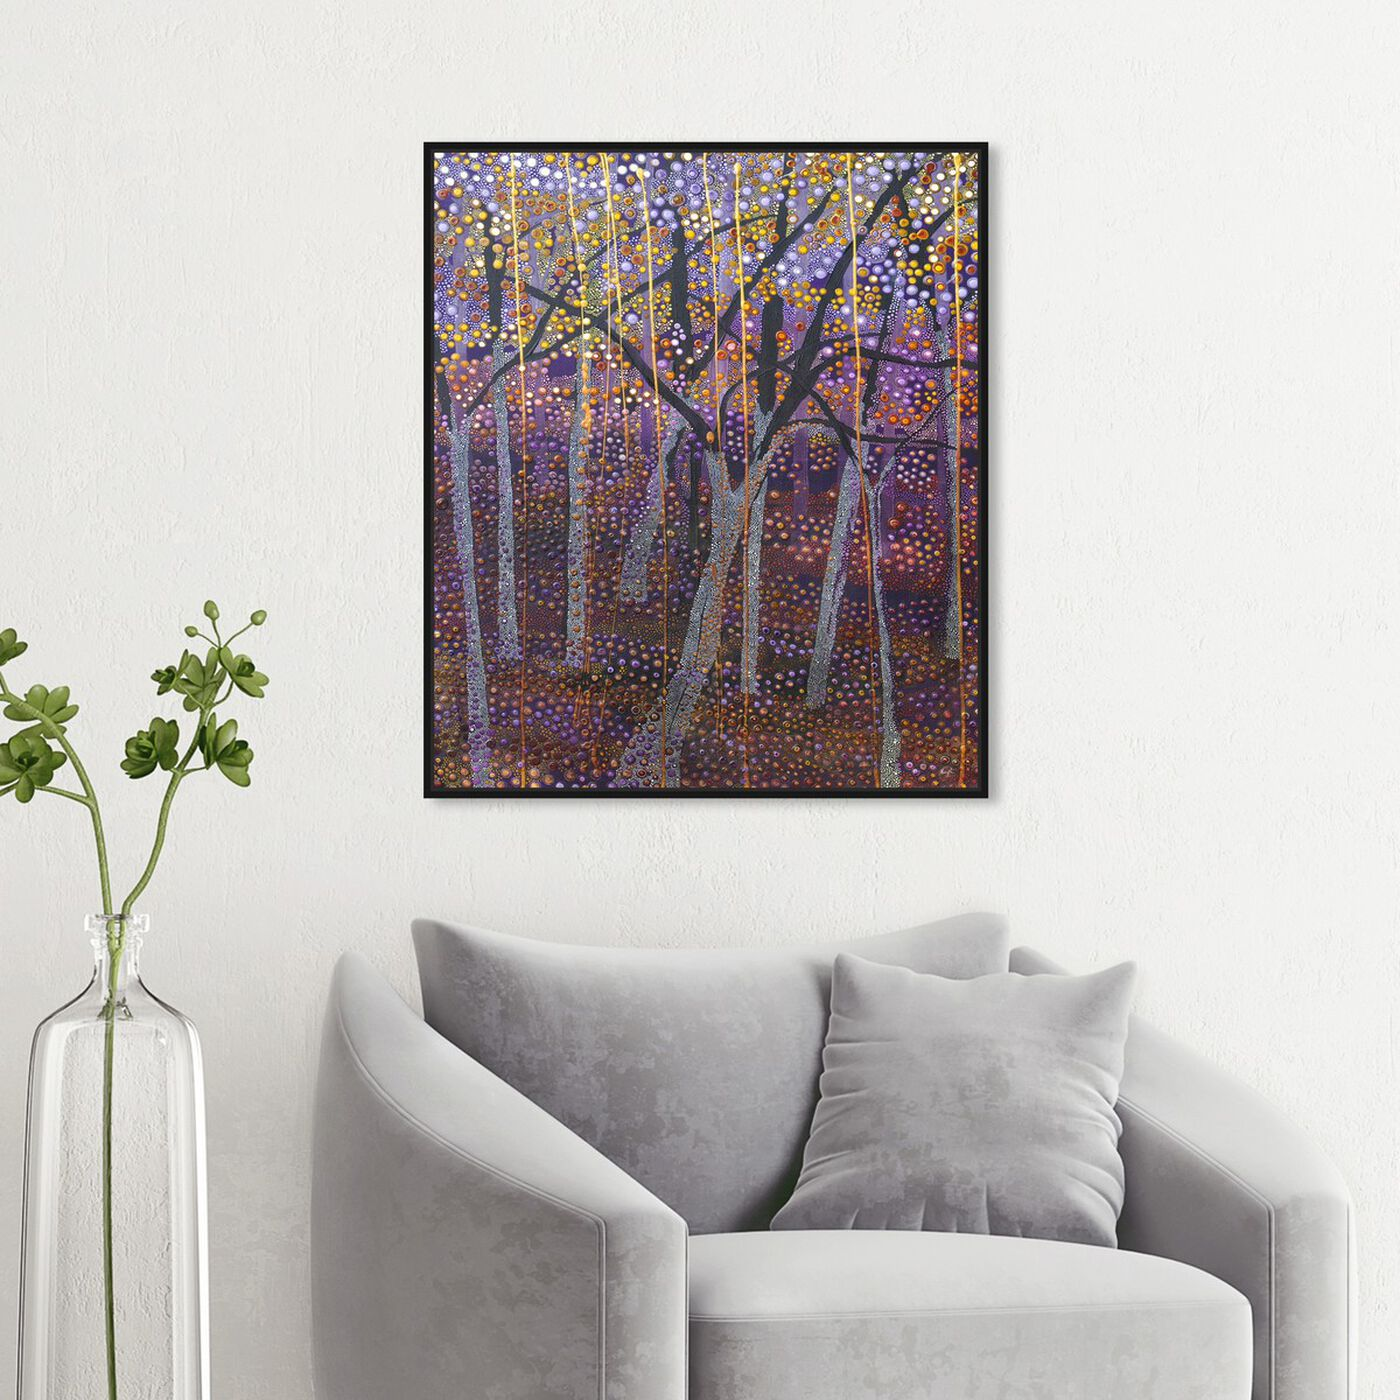 Hanging view of Enriqueta Ahrensburg - Black Night featuring nature and landscape and forest landscapes art.